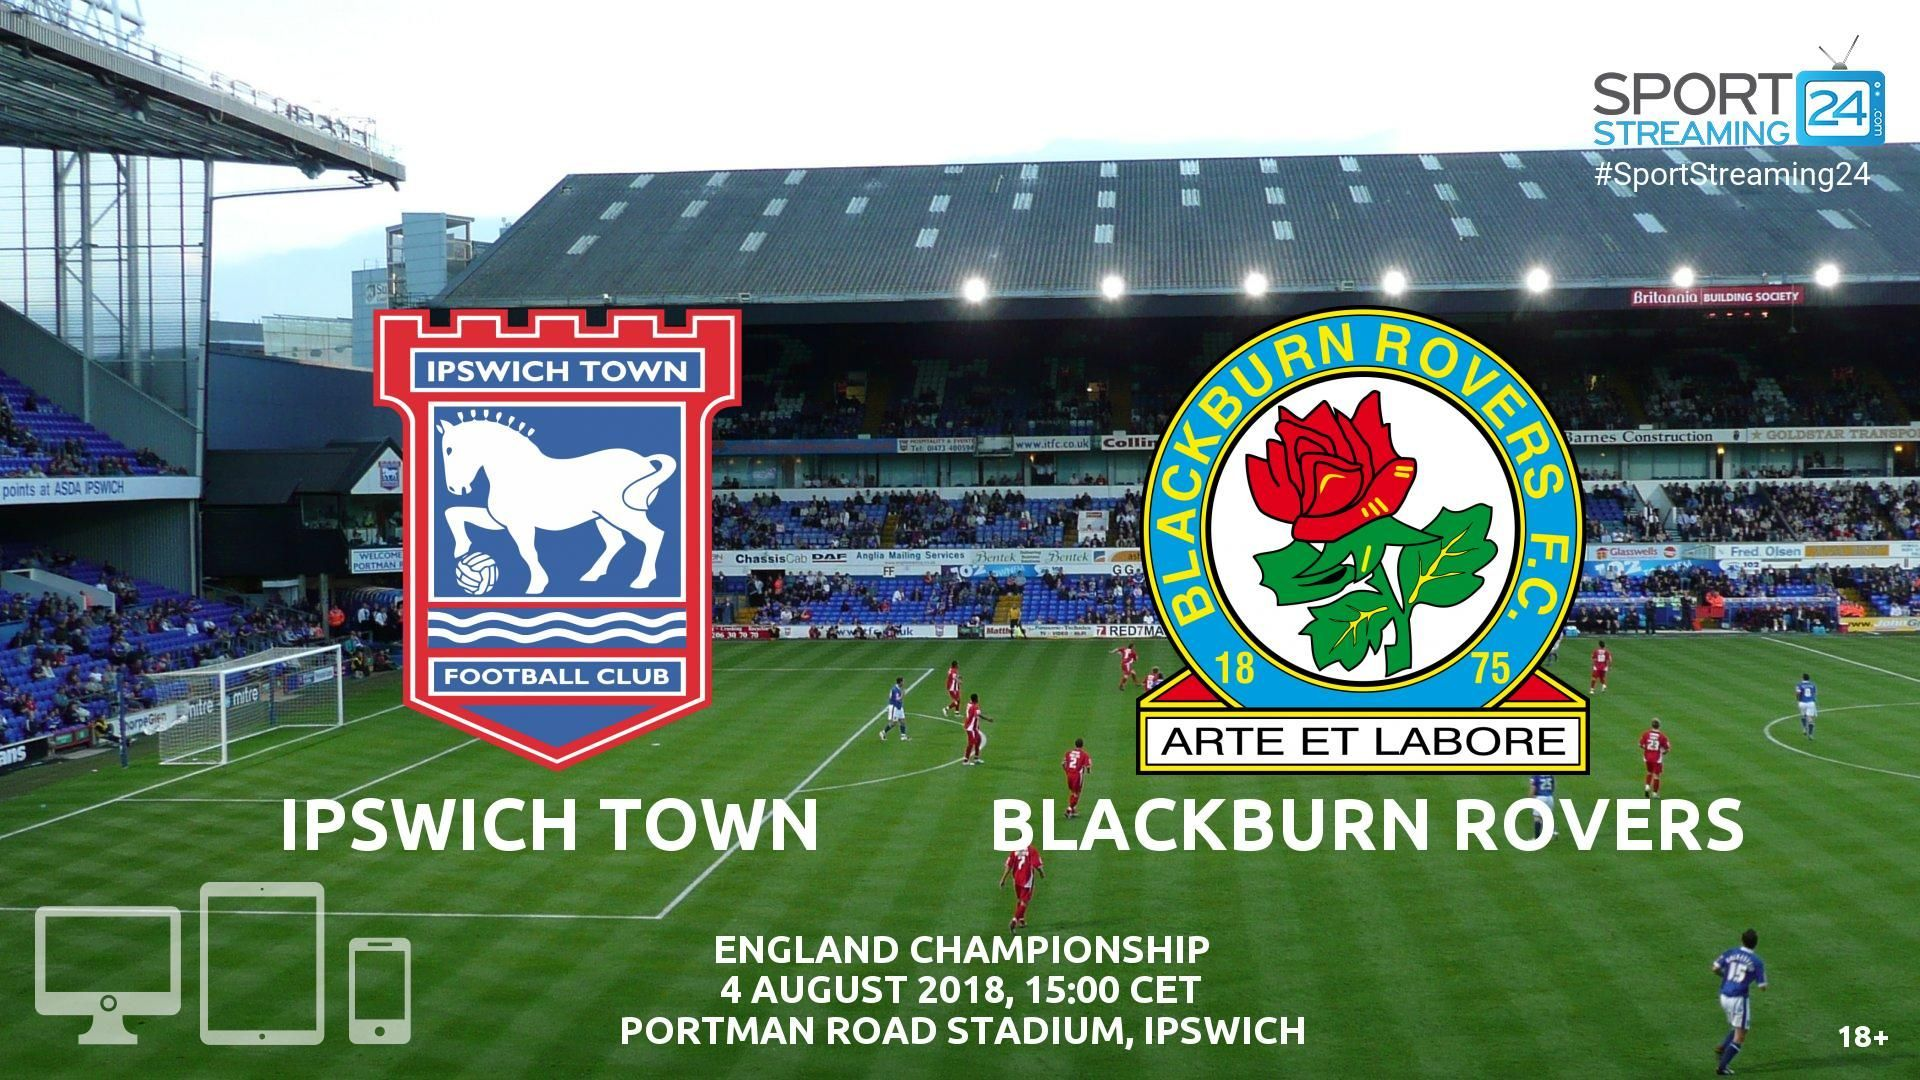 Streaming News And Match Previews Sportstreaming24 Streaming Ipswich Ipswich Town